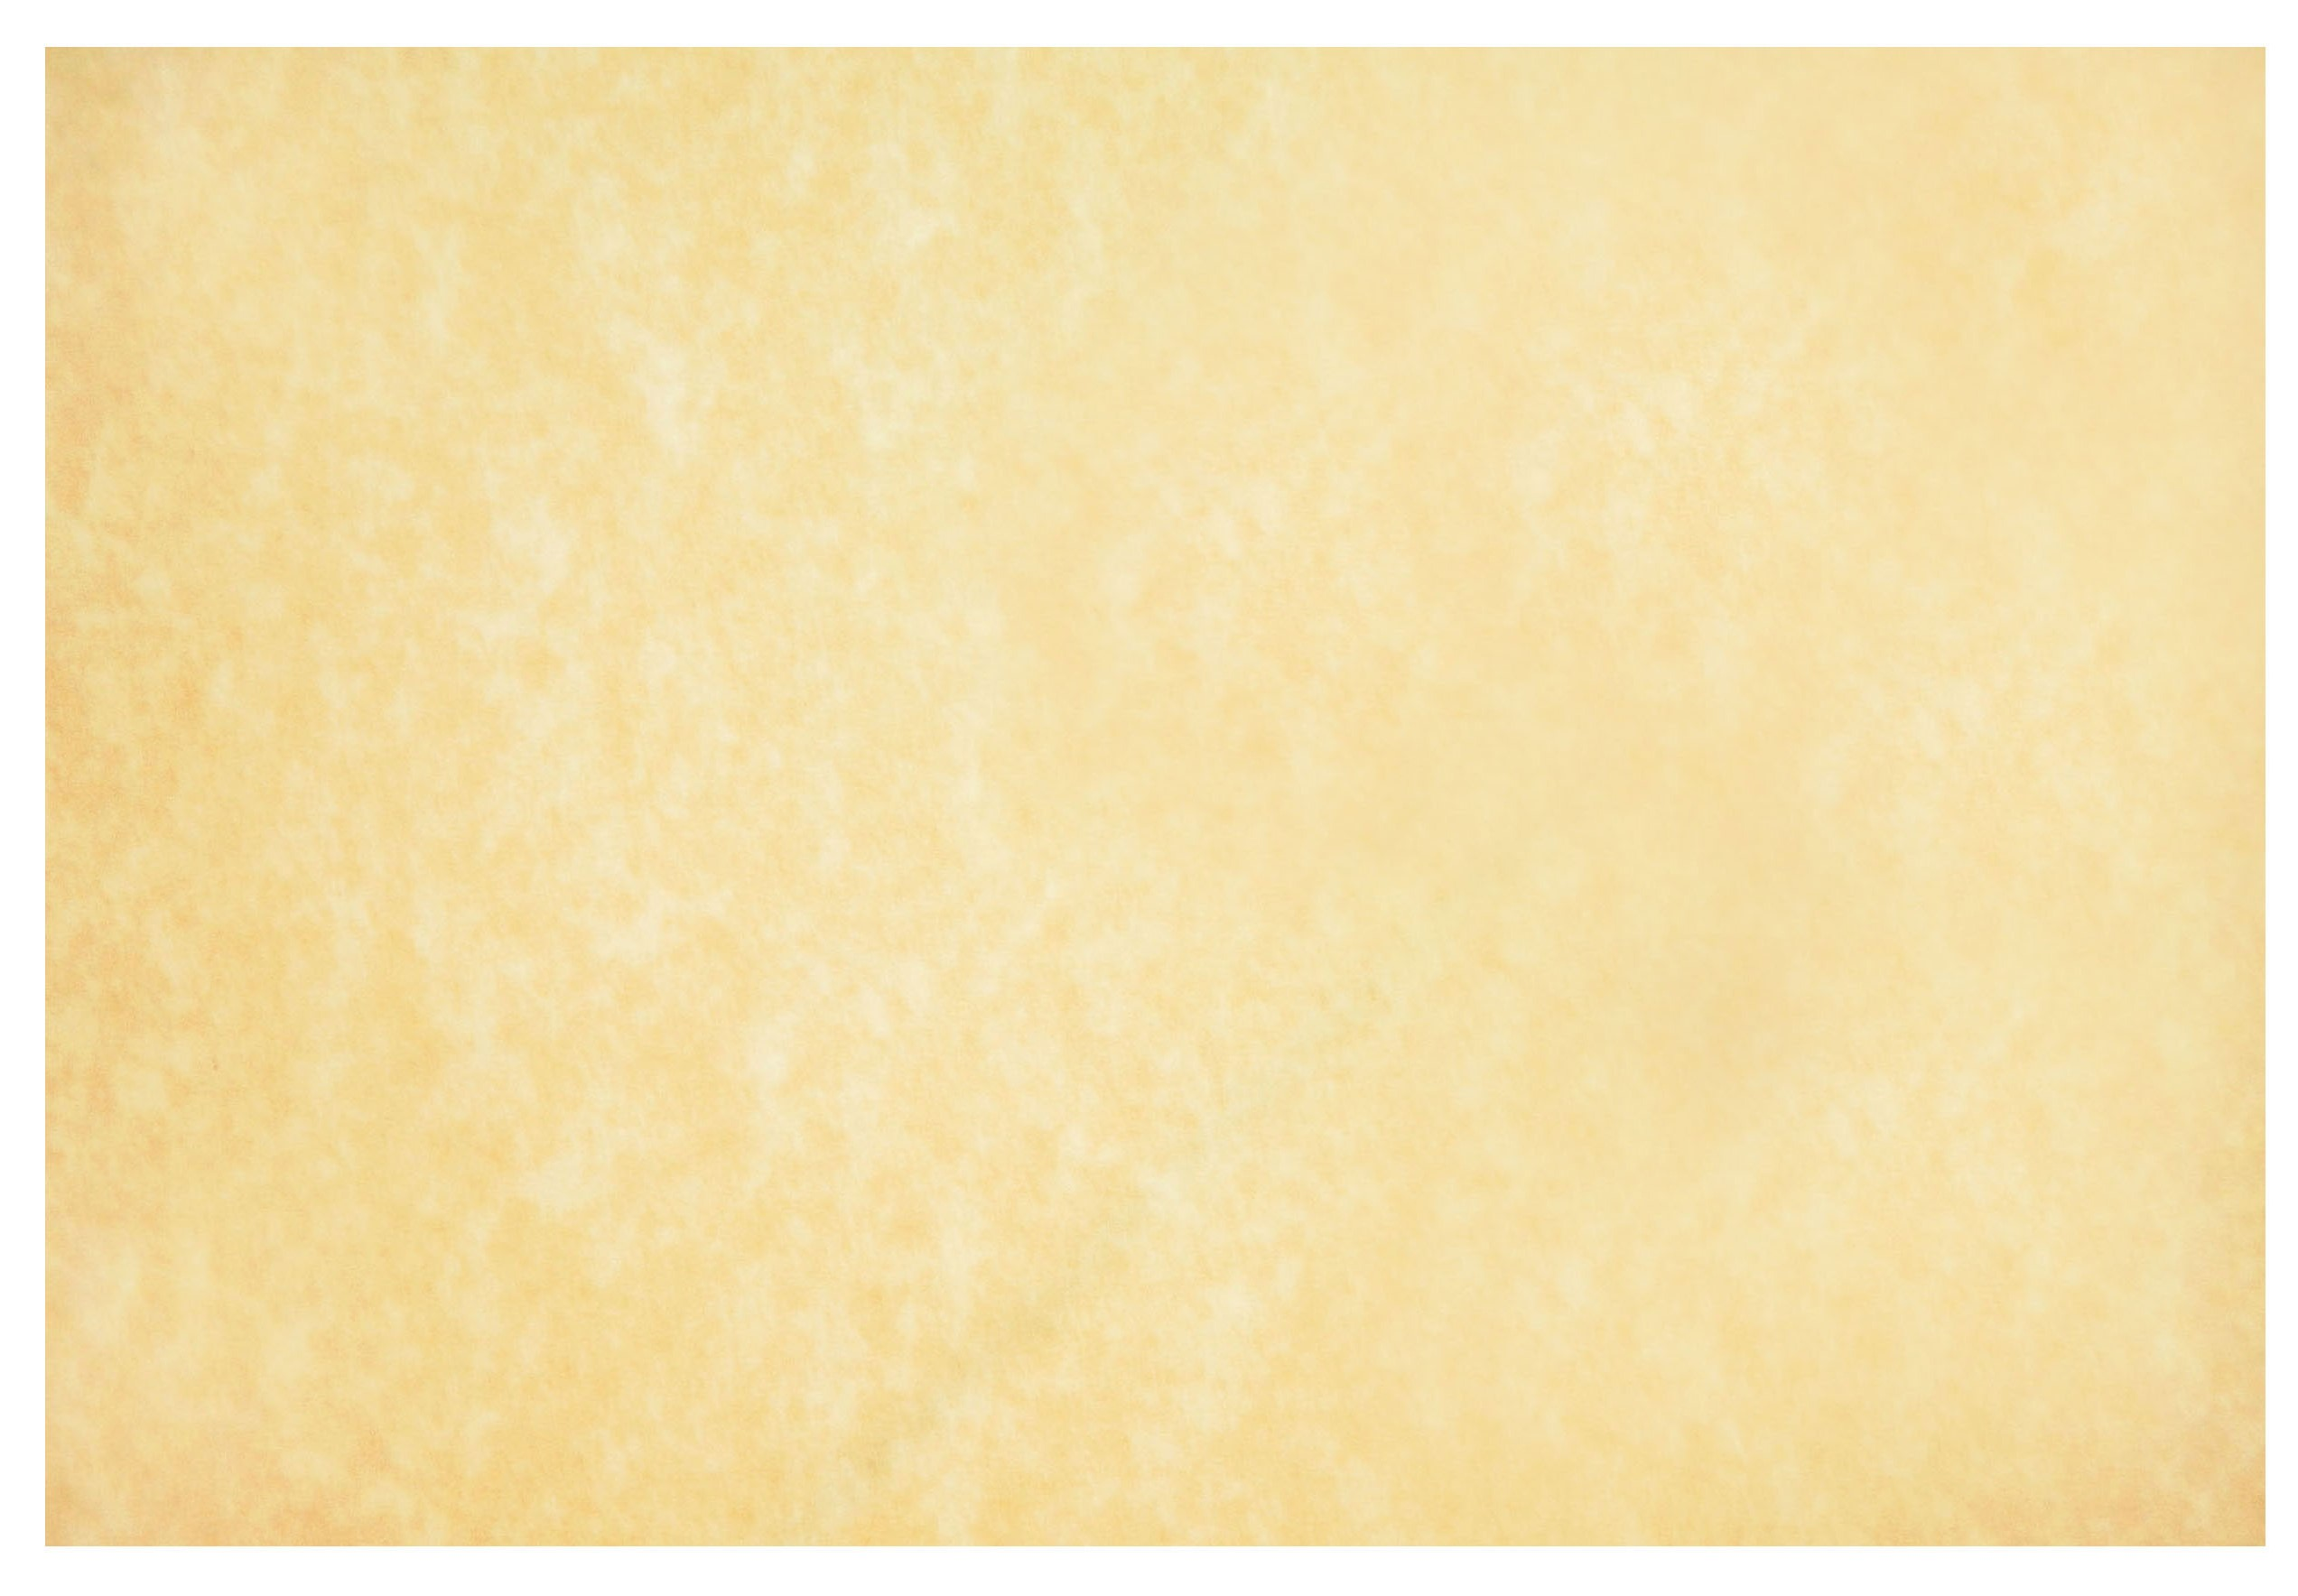 parchment background clipartsco